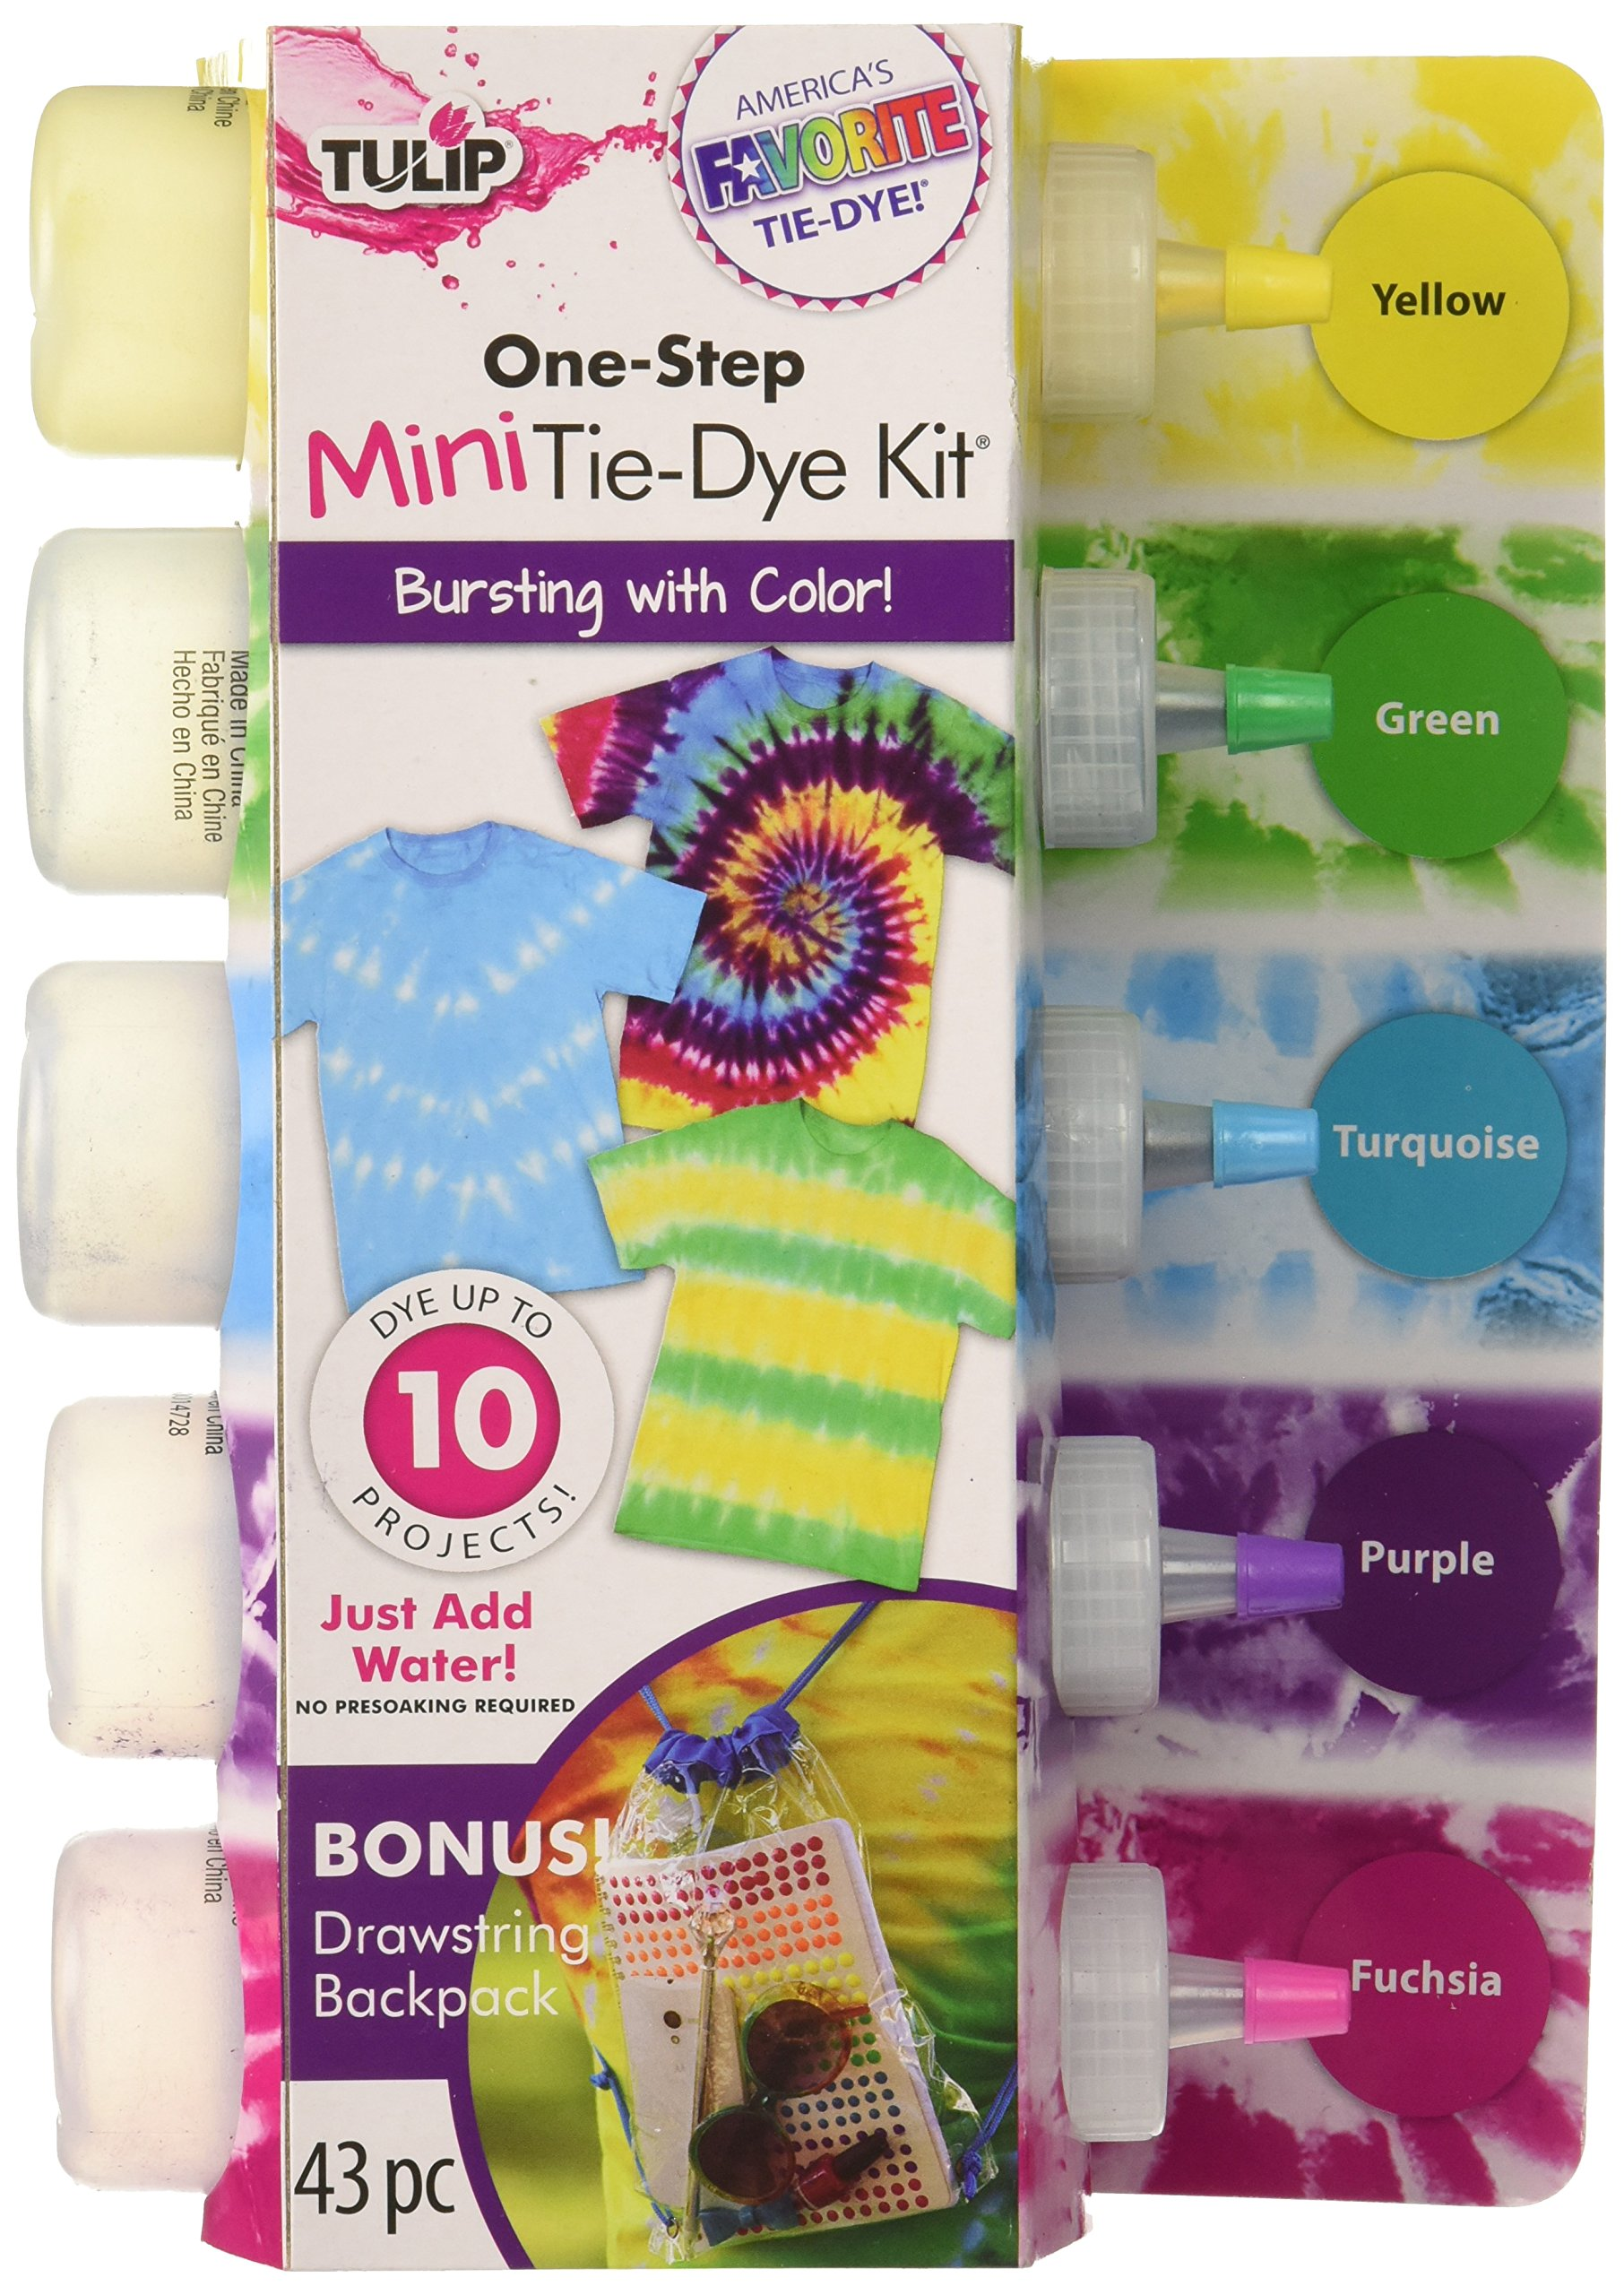 Tulip - One-Step 5 Color Tie-Dye Kits Rainbow,1.62oz and Tulip Rubber Bands 100-pc